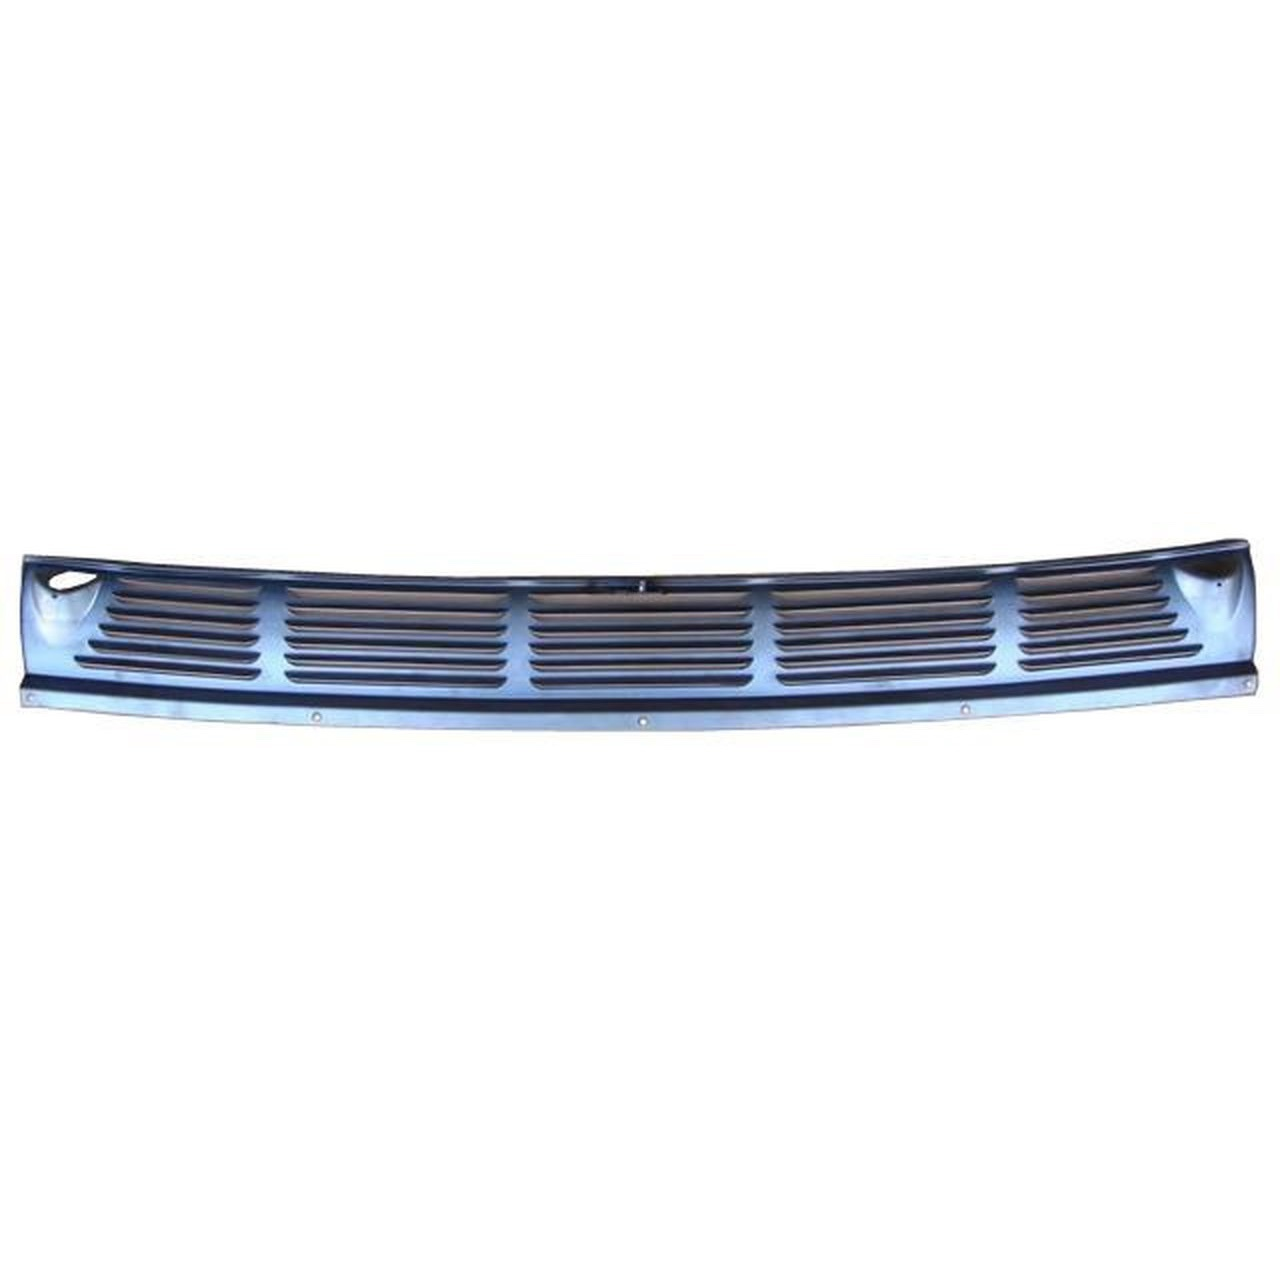 Cowl Vent Upper Grille